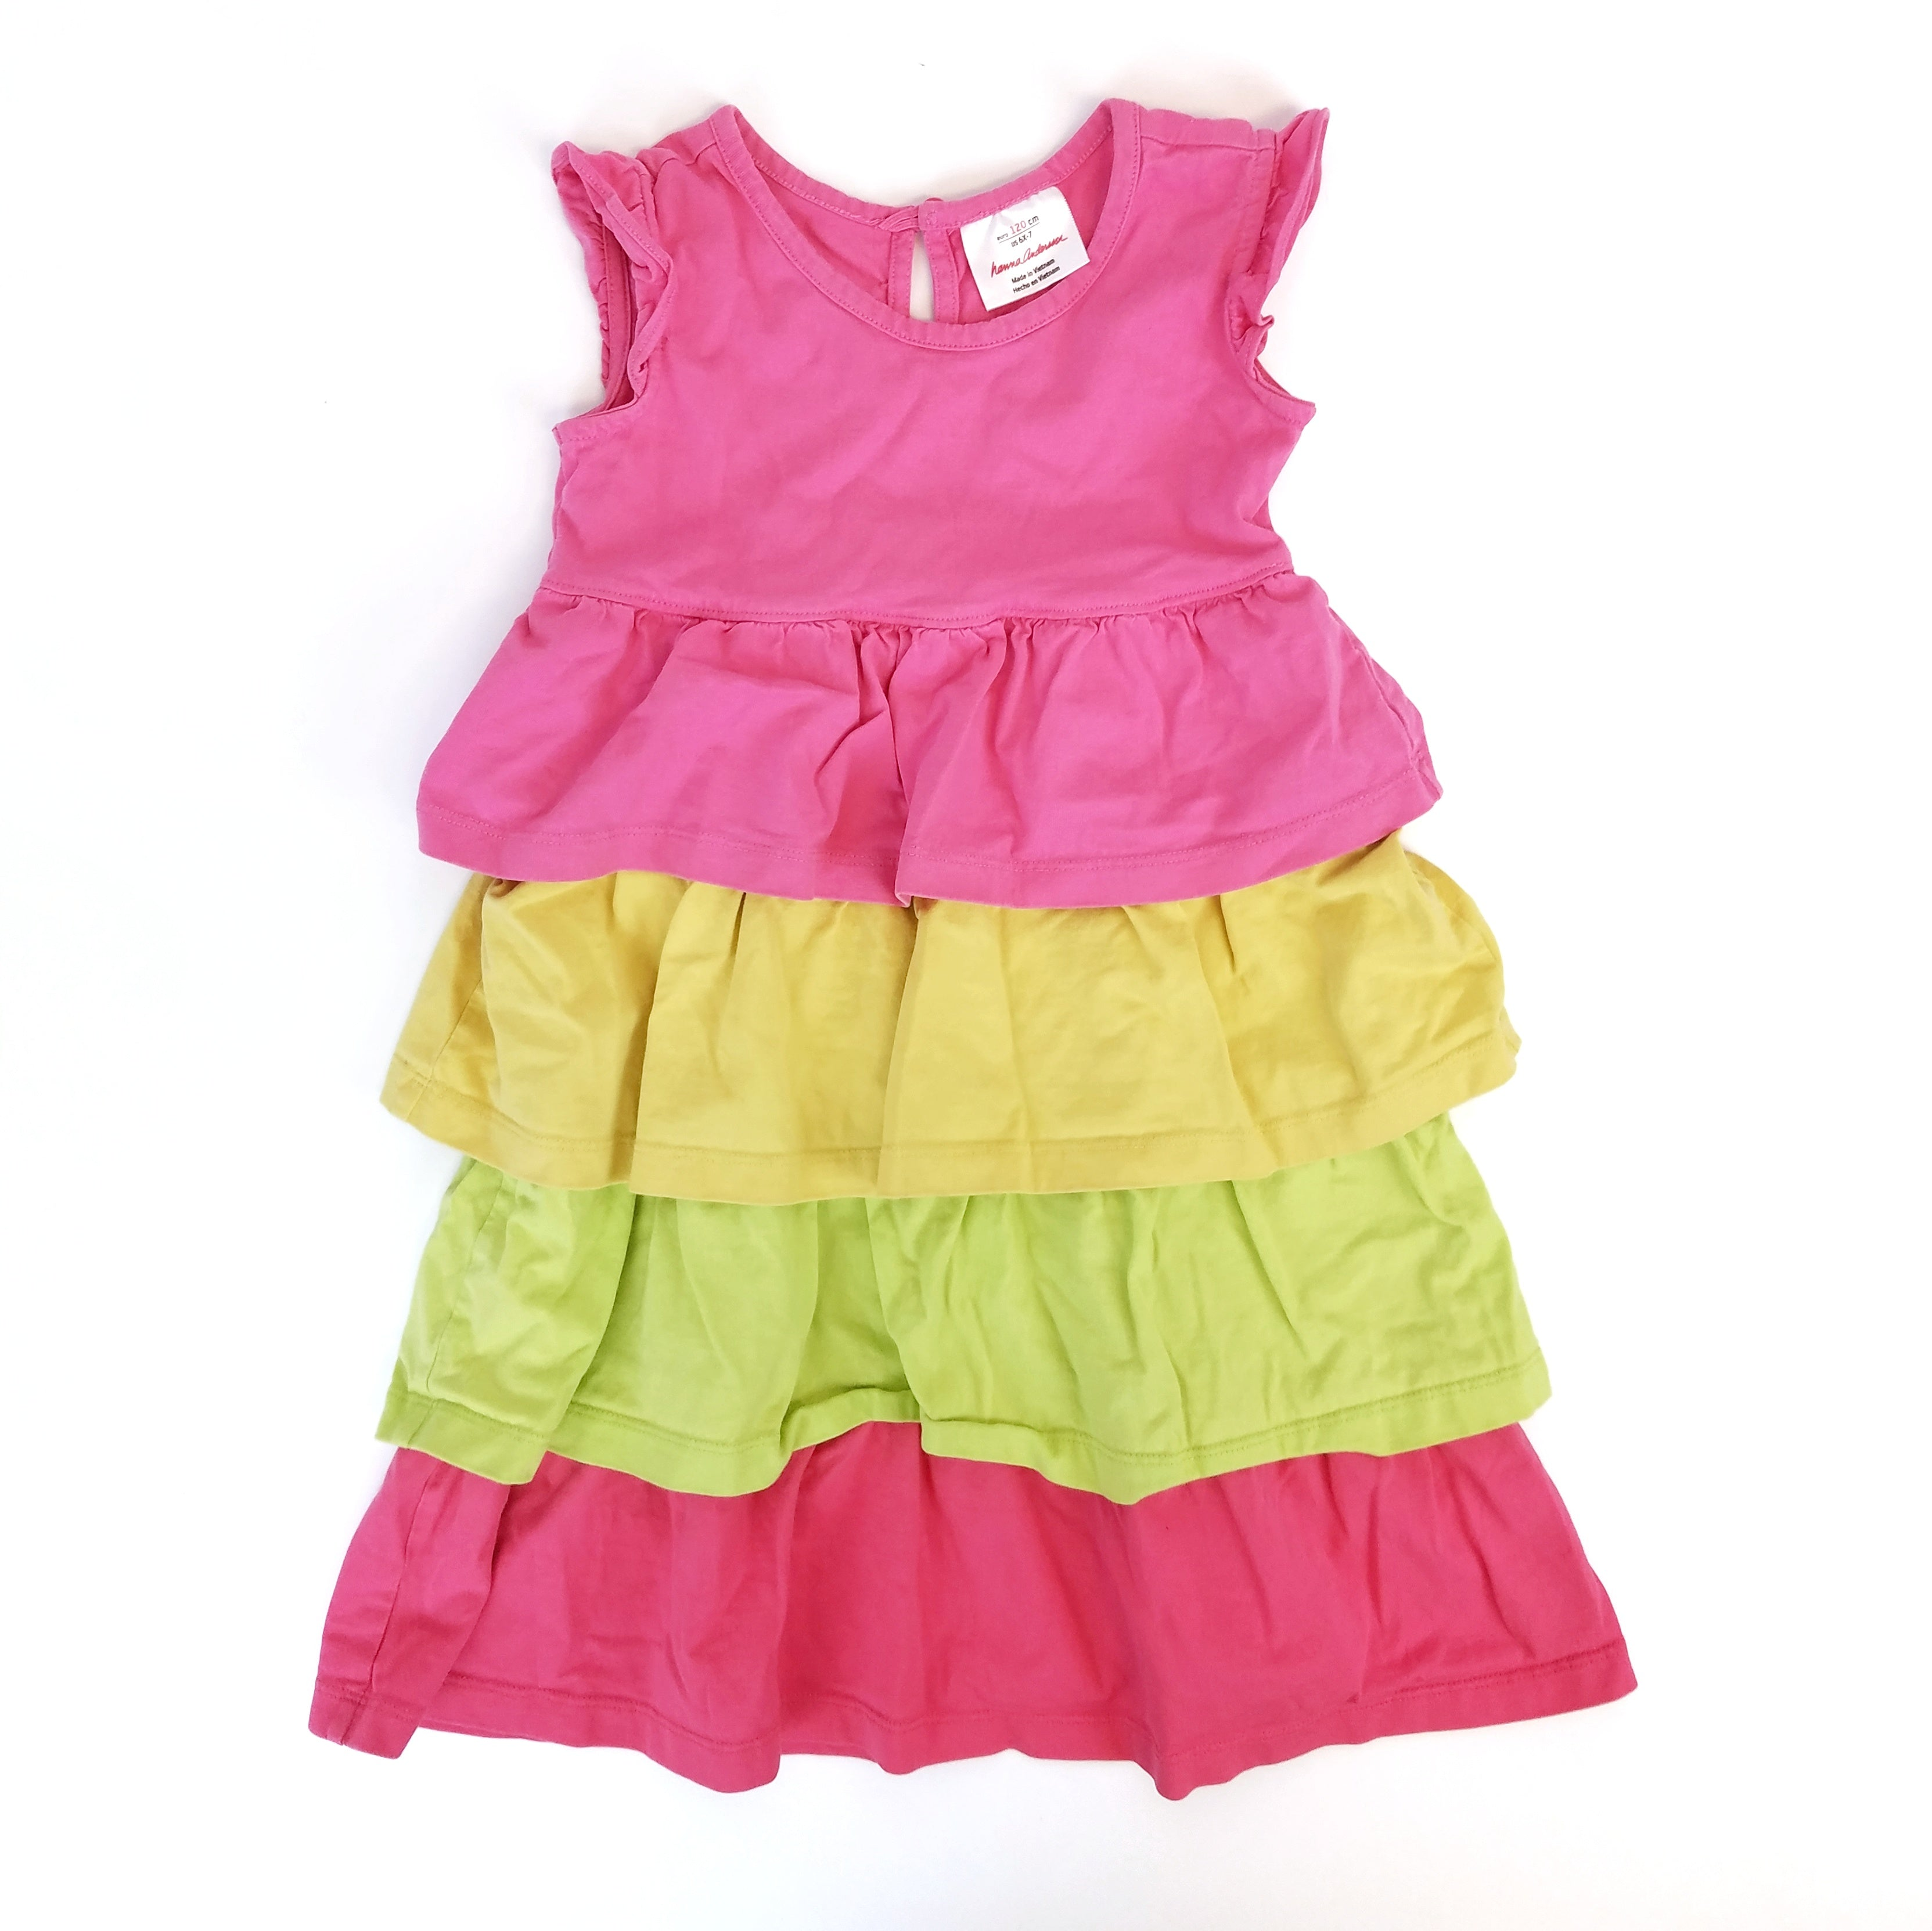 6-7 Tiered Ruffle Dress - Wild Child